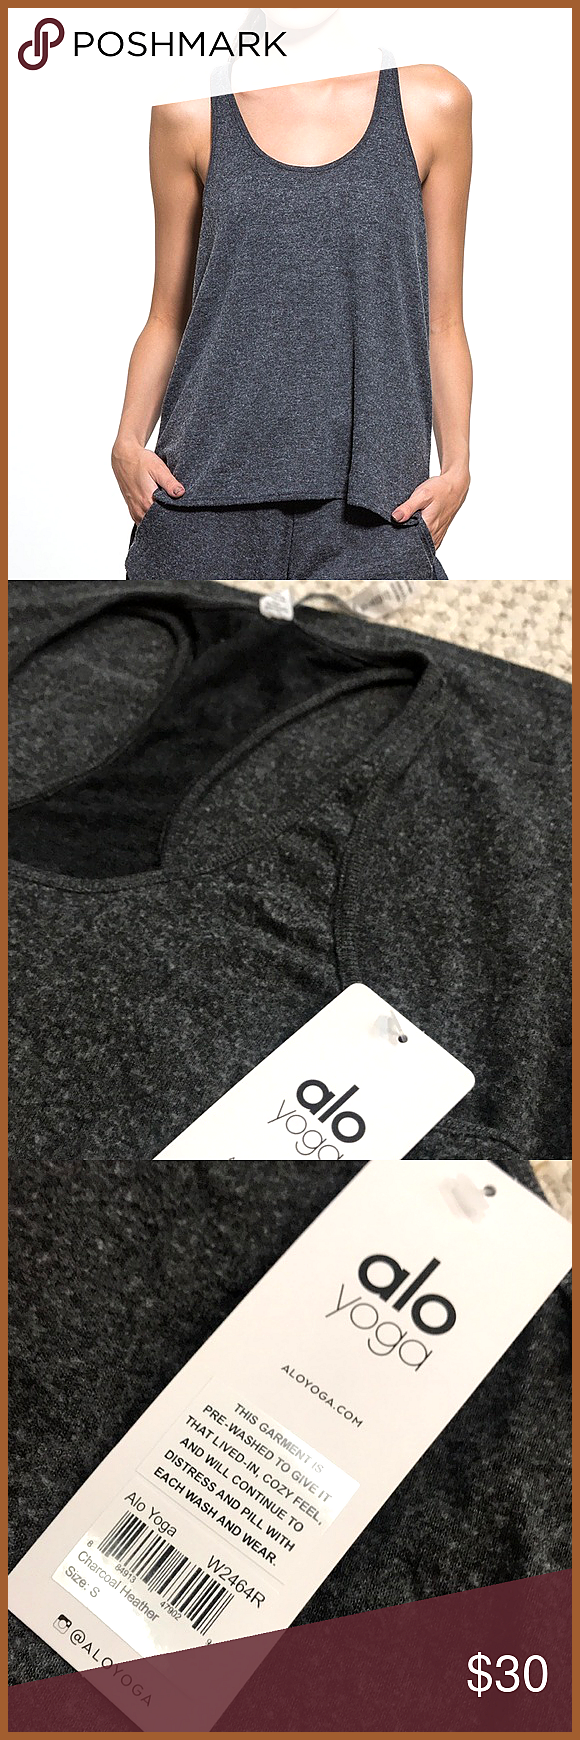 ALO Yoga Cozy Tank Charcoal Sz S NWT ALO Yoga Cozy Tank Charcoal Sz S Please see photos for more details ALO Yoga Tops Tank Tops NWT ALO Yoga Cozy Tank Charcoal Sz S NWT...